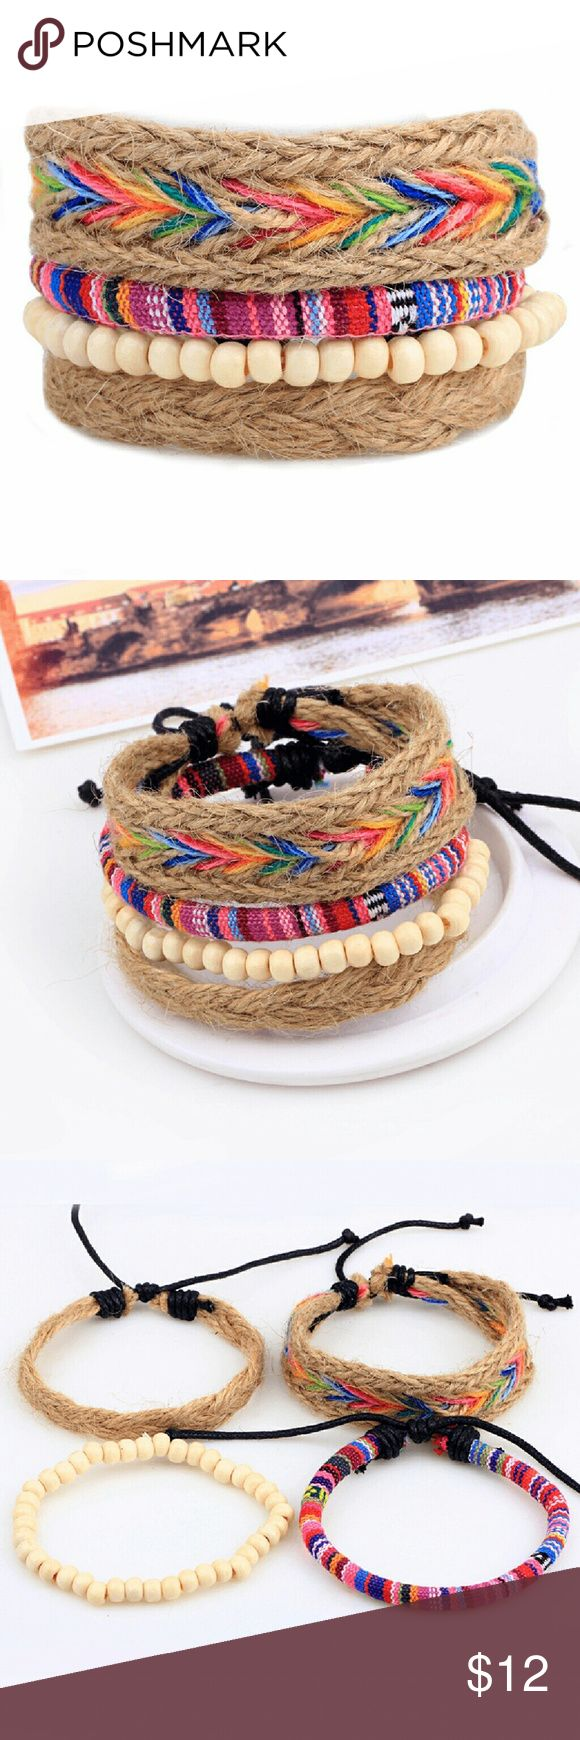 Fashion Jewelry Bracelets Nepal Bracelet Beaded Braid Hemp Cord  Feature: Nepal, yunnan, seven colors, beads  Specifications: 7?-8?  Material: Hemp braid cord, wood beads, wax cord  Item weight: 1oz  Makes a great gift for friend and family or self purchase  Birthday gift, Valentine's gift and etc Jewelry Bracelets